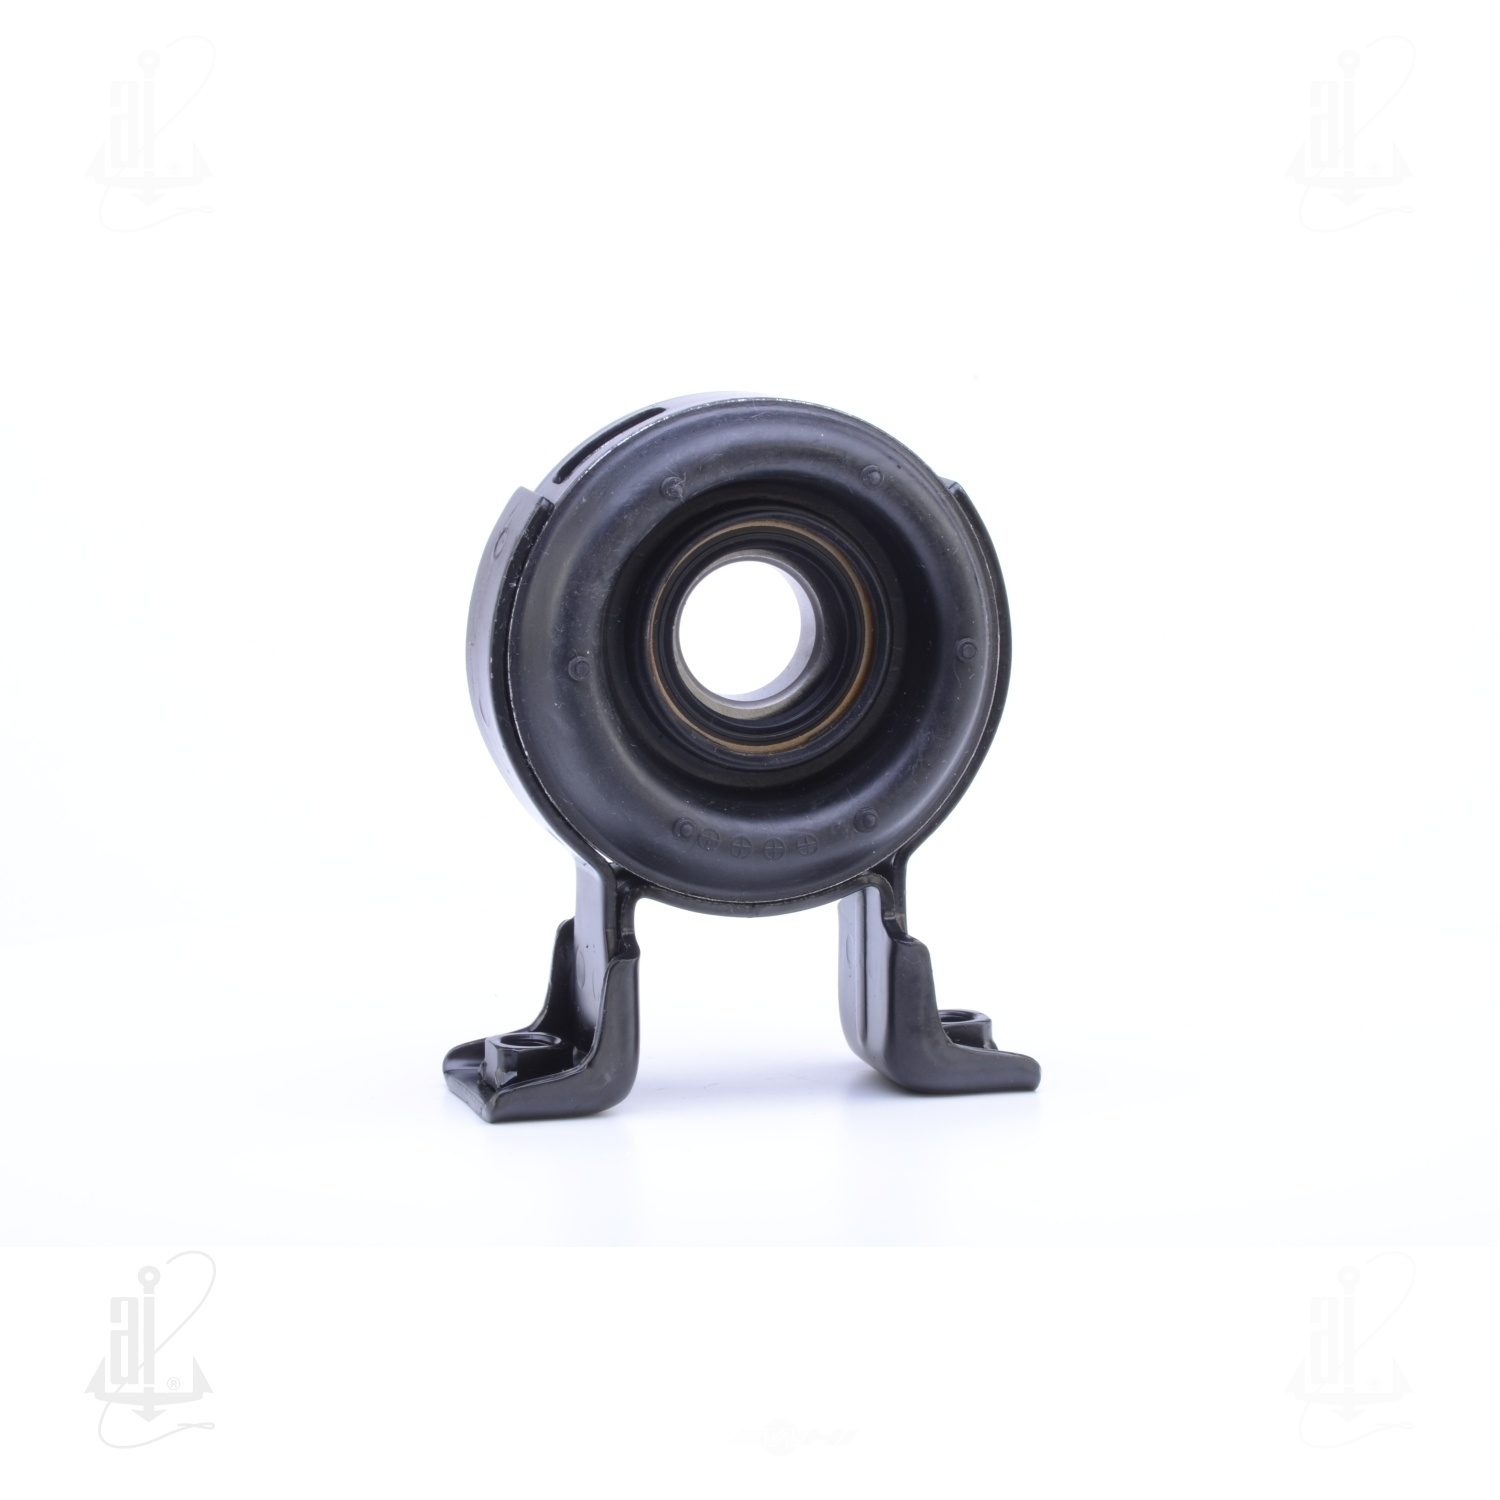 ANCHOR - Drive Shaft Center Support Bearing - ANH 6068